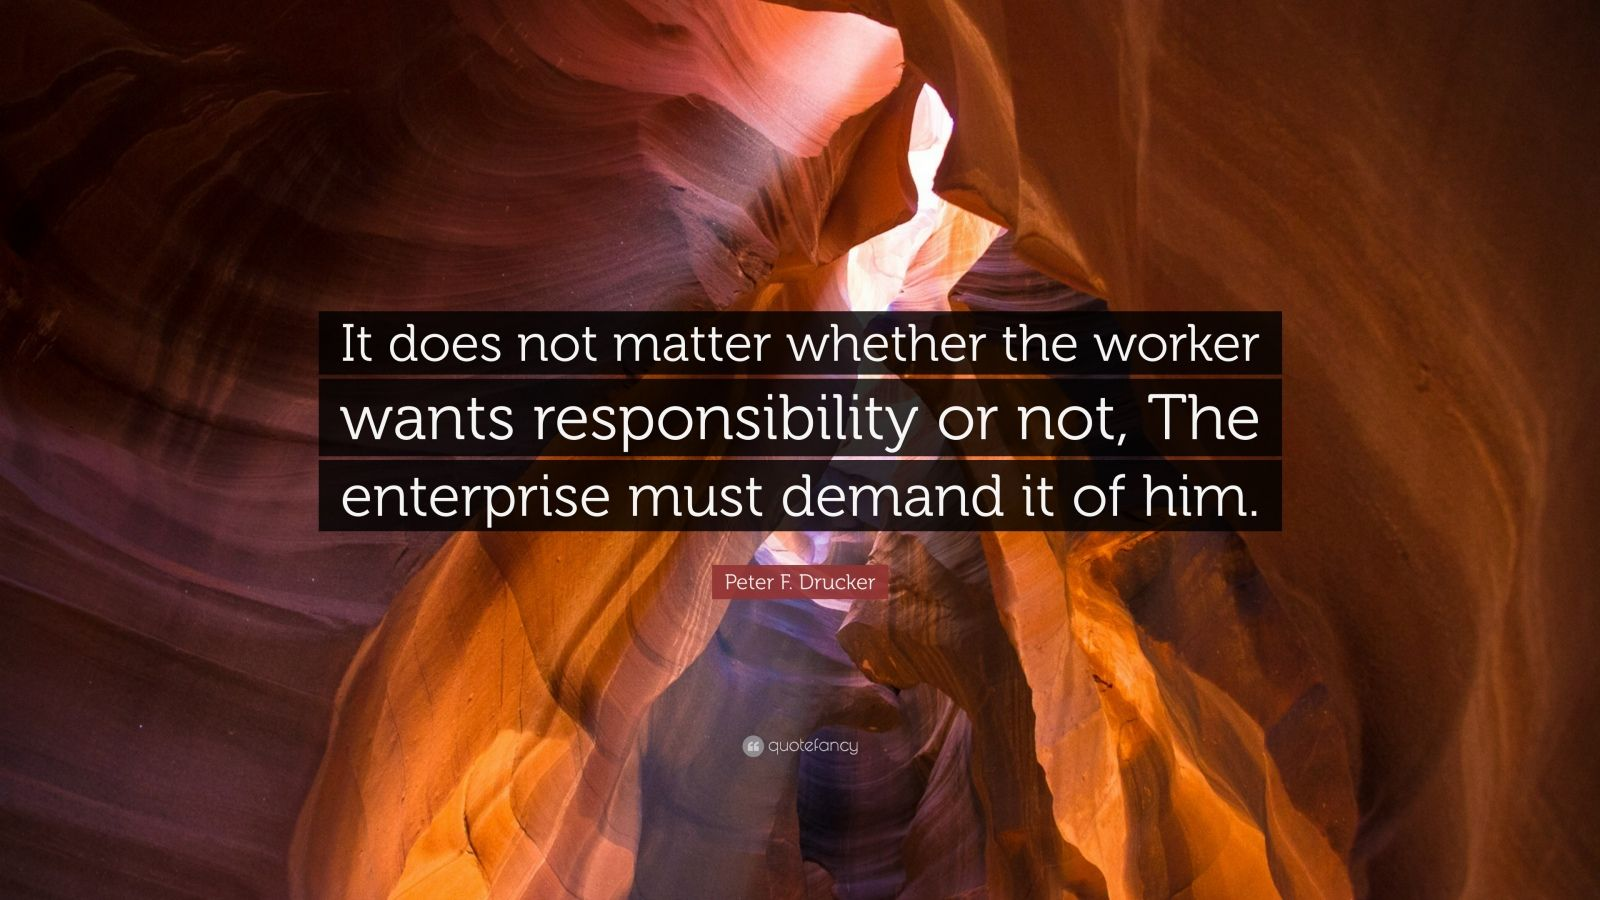 """Peter F. Drucker Quote: """"It does not matter whether the worker wants responsibility or not, The enterprise must demand it of him."""""""